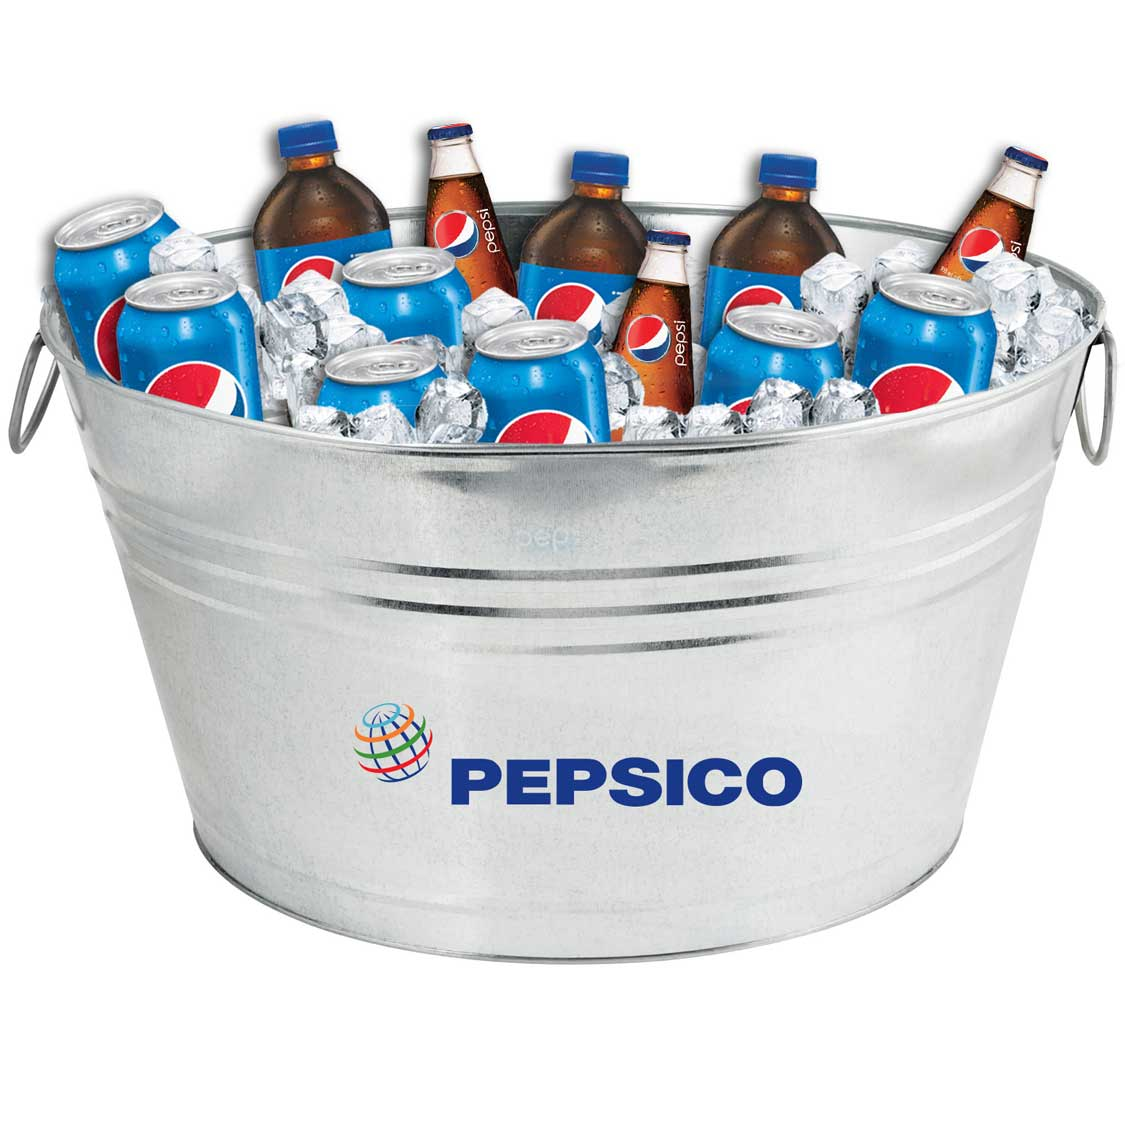 Oval Galvanized Metal Tub - Pepsico